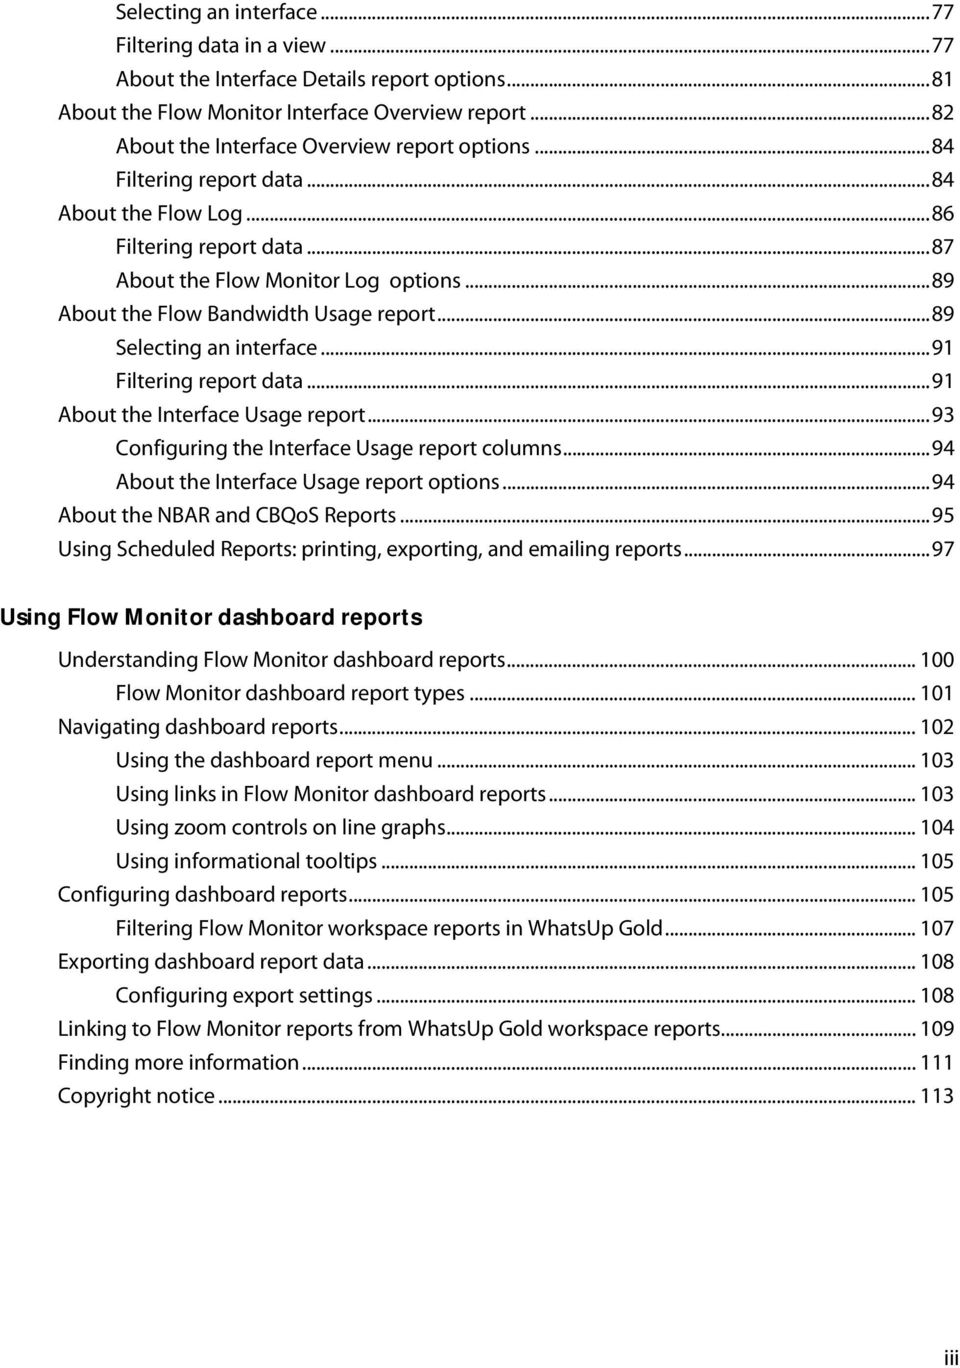 .. 89 About the Flow Bandwidth Usage report... 89 Selecting an interface... 91 Filtering report data... 91 About the Interface Usage report... 93 Configuring the Interface Usage report columns.